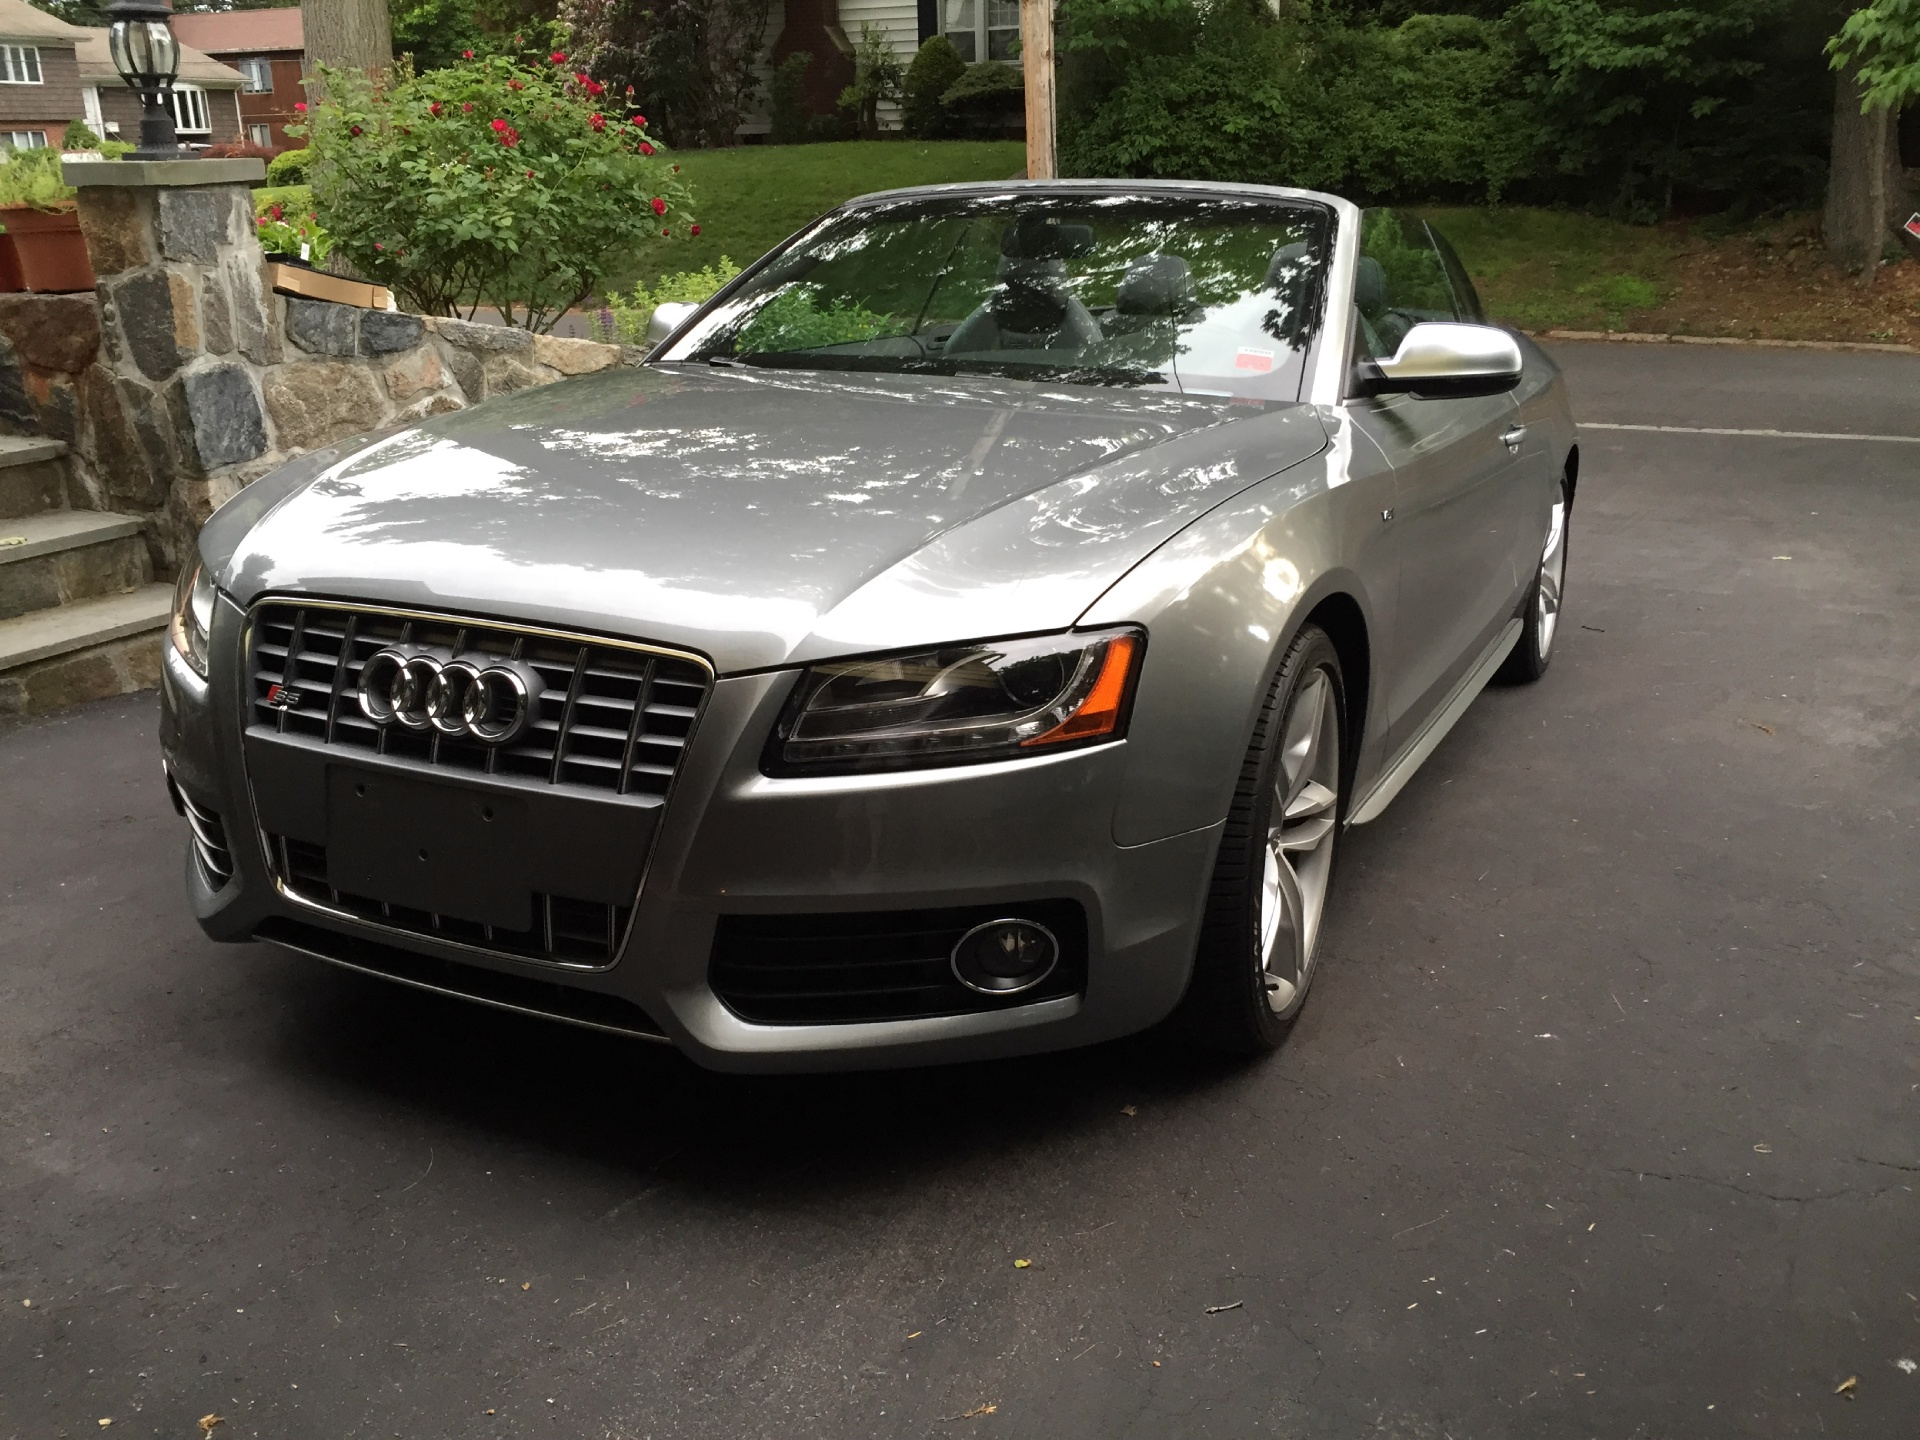 2011 audi s5 stock audis5 for sale near new york ny ny audi dealer. Black Bedroom Furniture Sets. Home Design Ideas